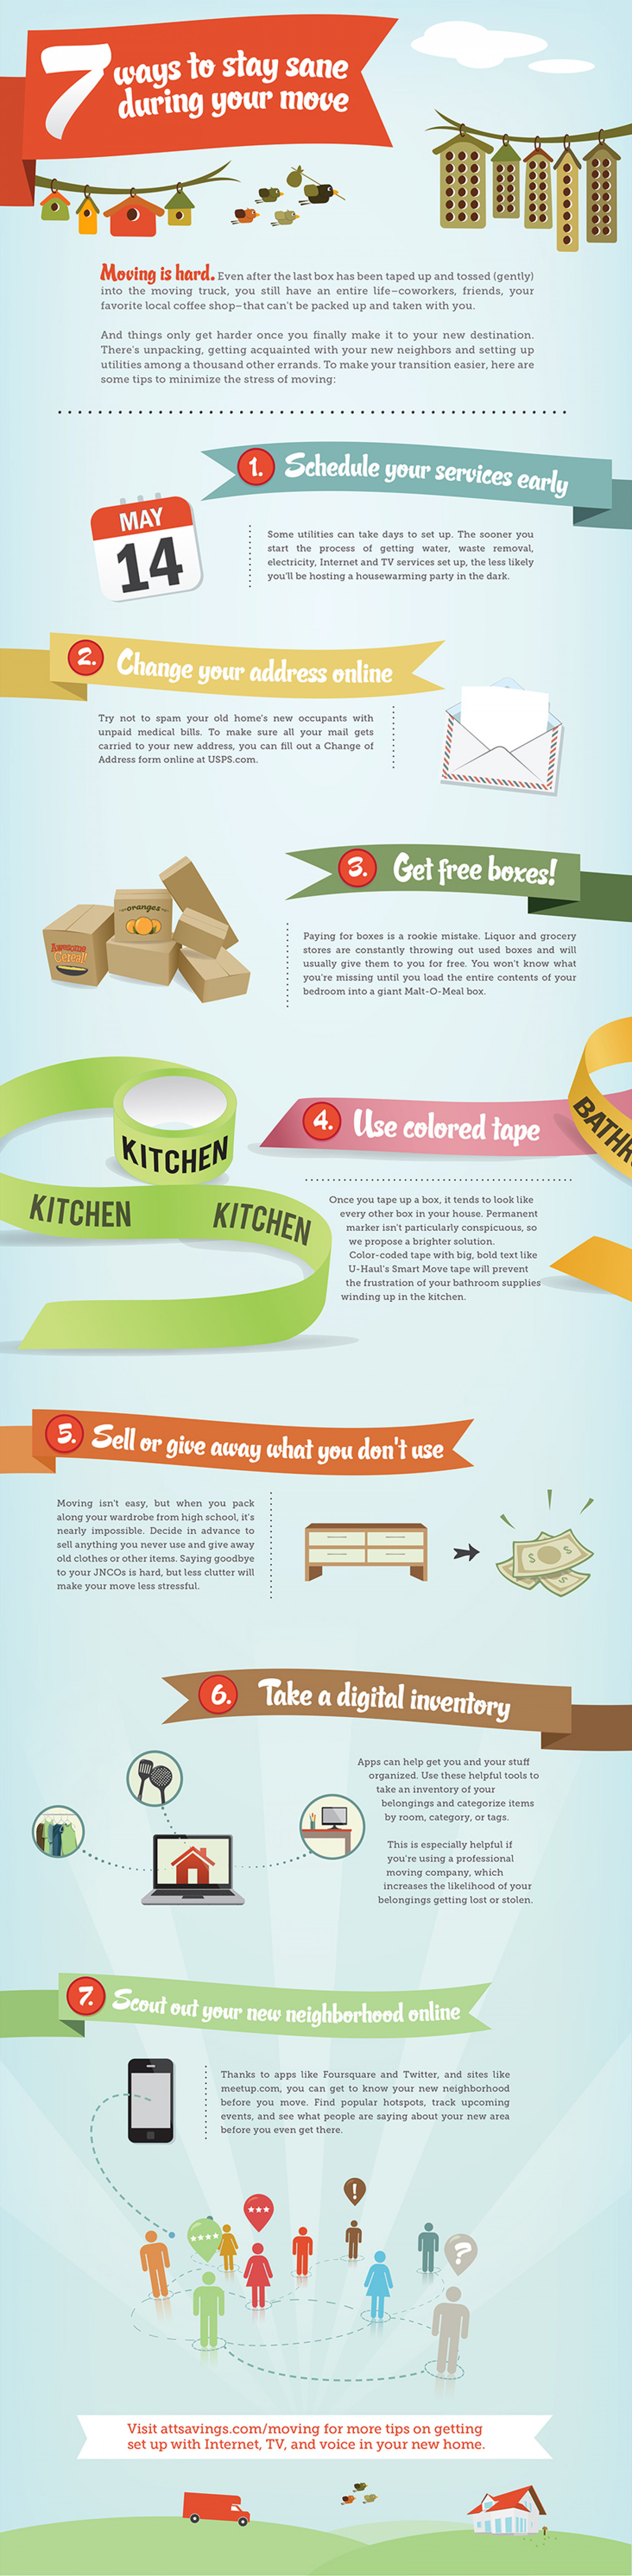 7 Best Moving Tips Infographic